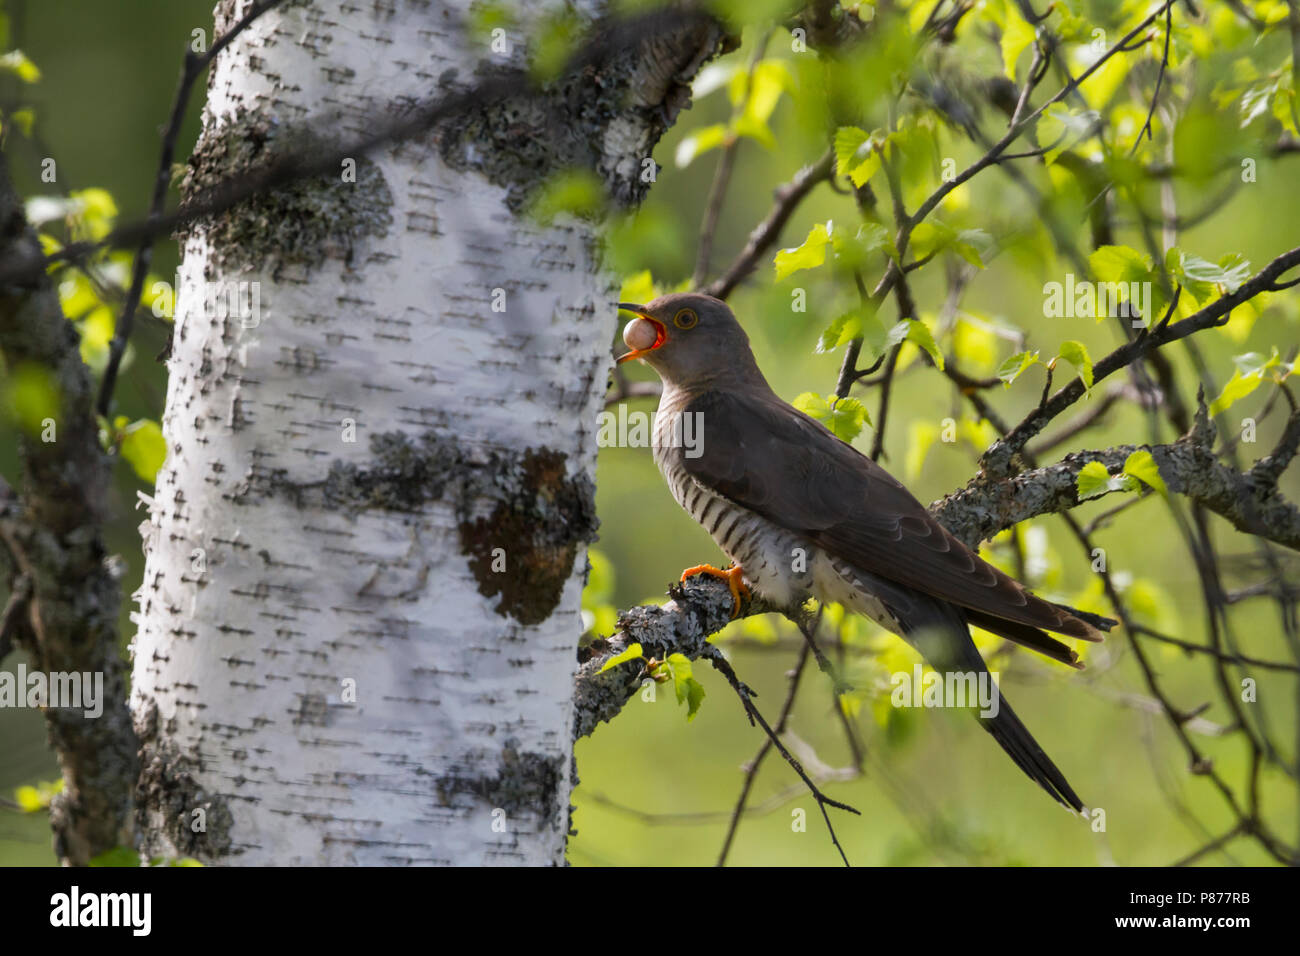 Common Cuckoo (Cuculus canorus ssp. subtelephonus), Kazakhstan, adult, female with egg stolen from host nest of her own egg, to throw the egg away. - Stock Image